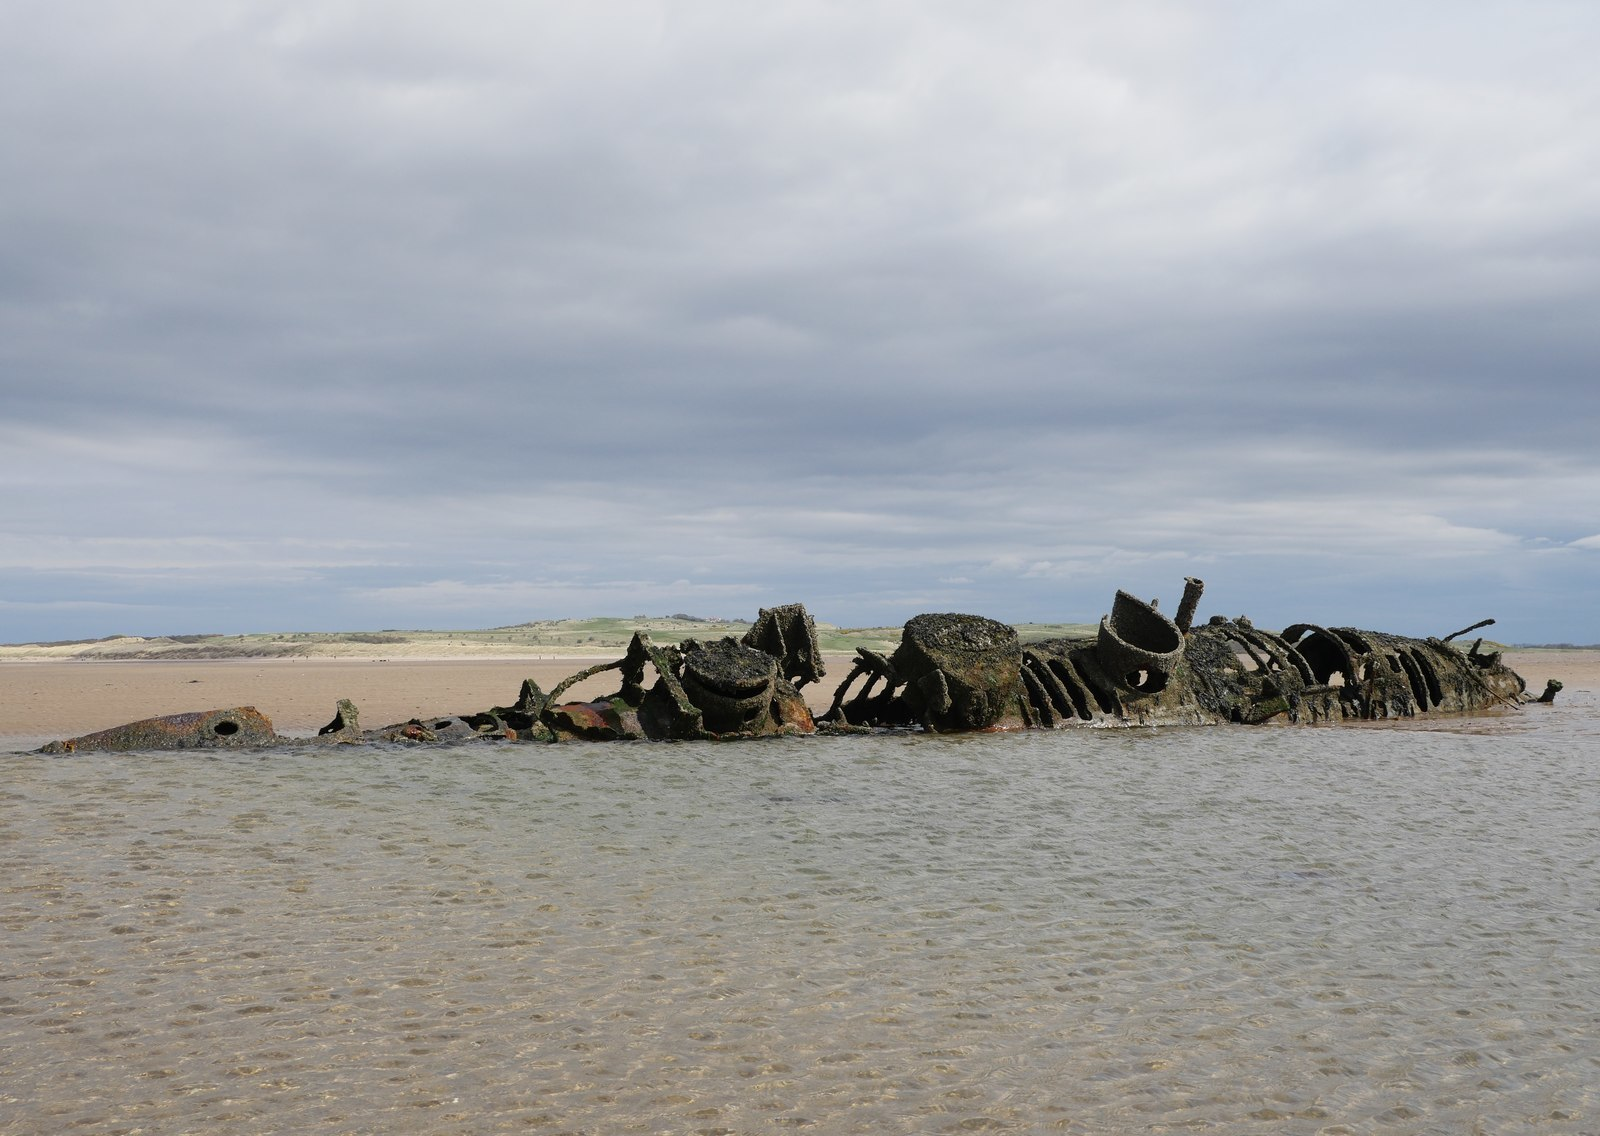 Young girl stuck in 'sinking sands' at Aberlady Bay